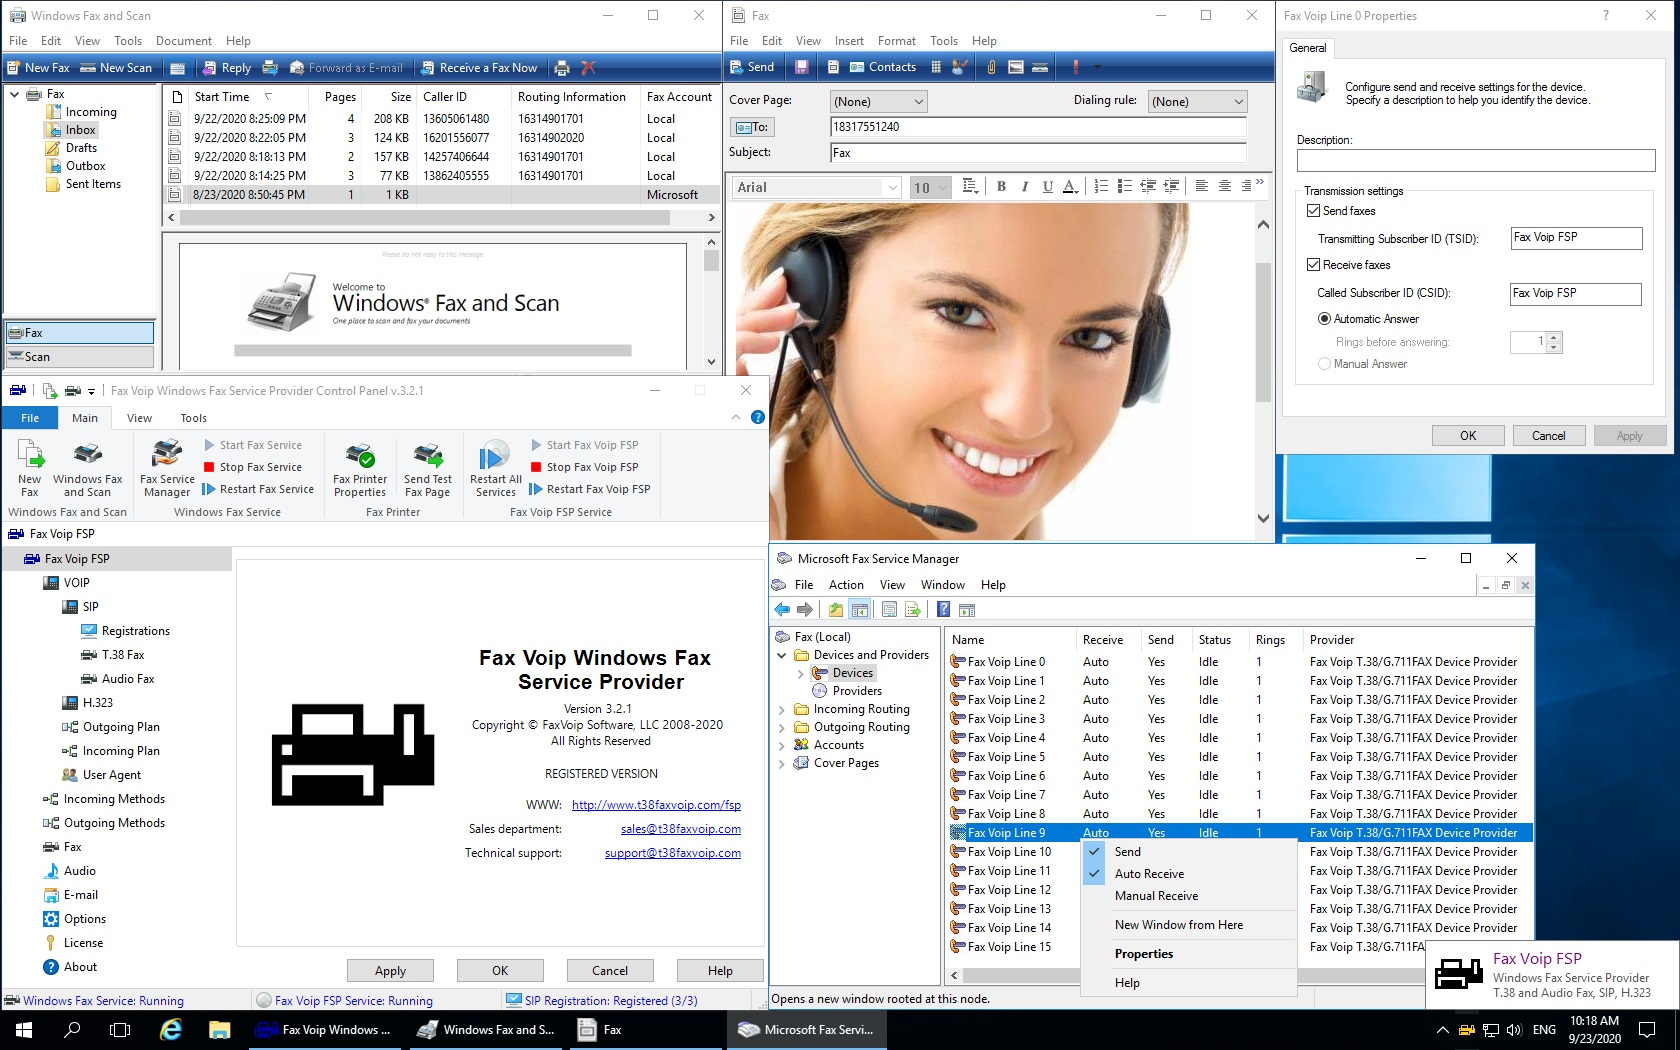 Fax%20Voip%20Windows%20Fax%20Service%20Provider